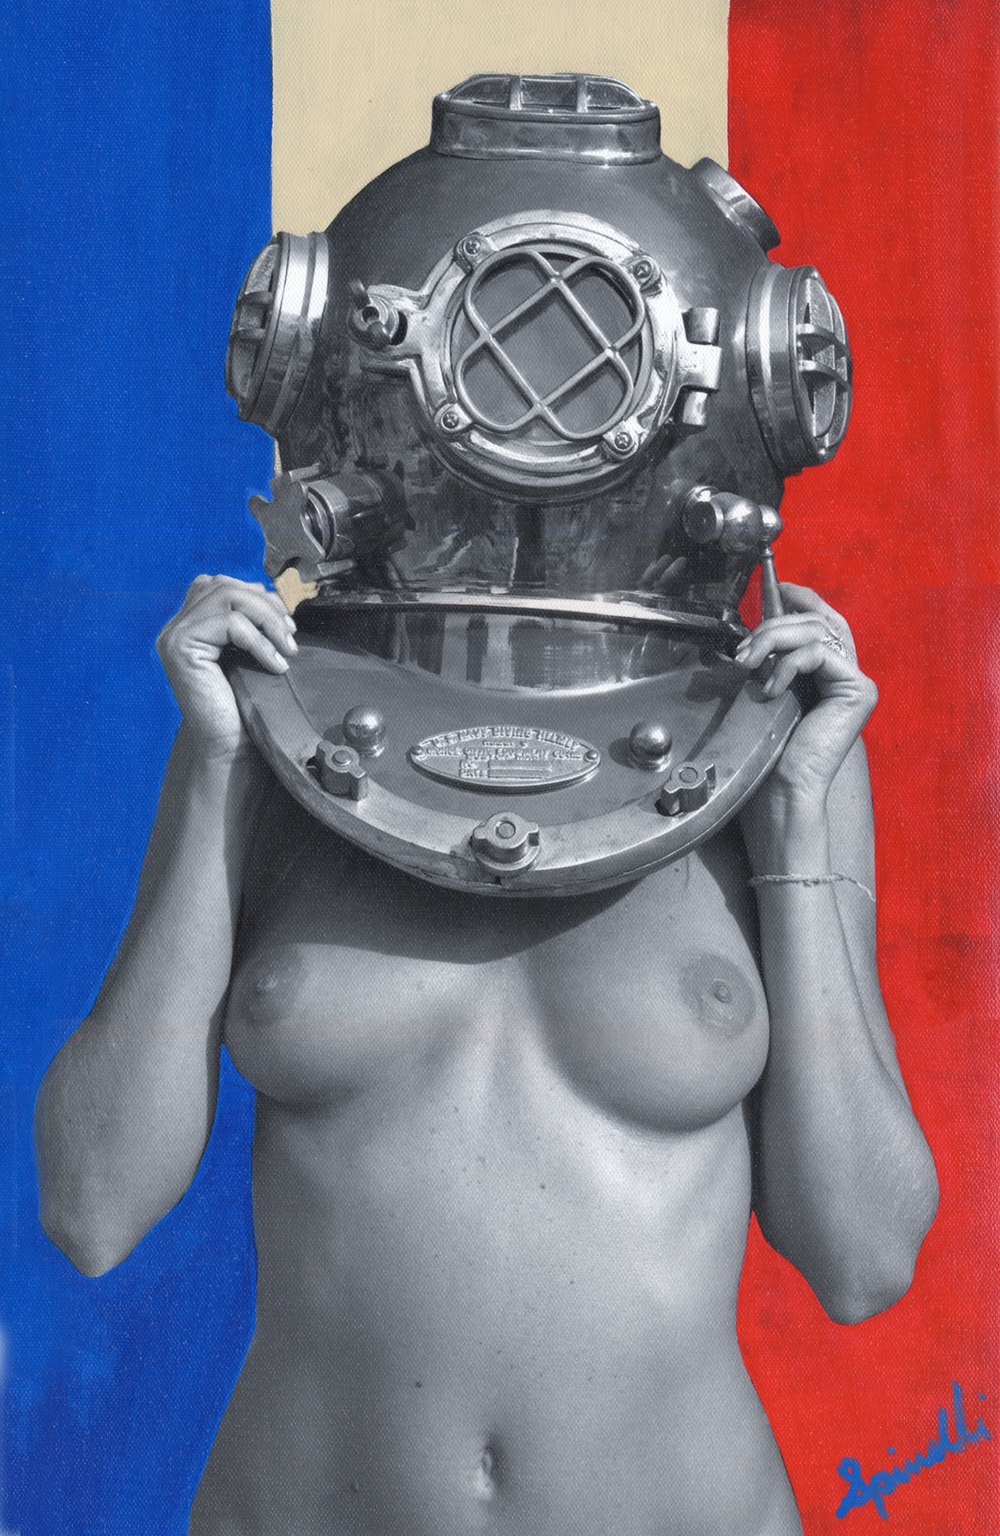 "Commission works. Diver UP! ""Vive La France"" 12x18in (30x45cm) Acrylic/oil on photocanvas. ©www.VictorSpinelli.com"